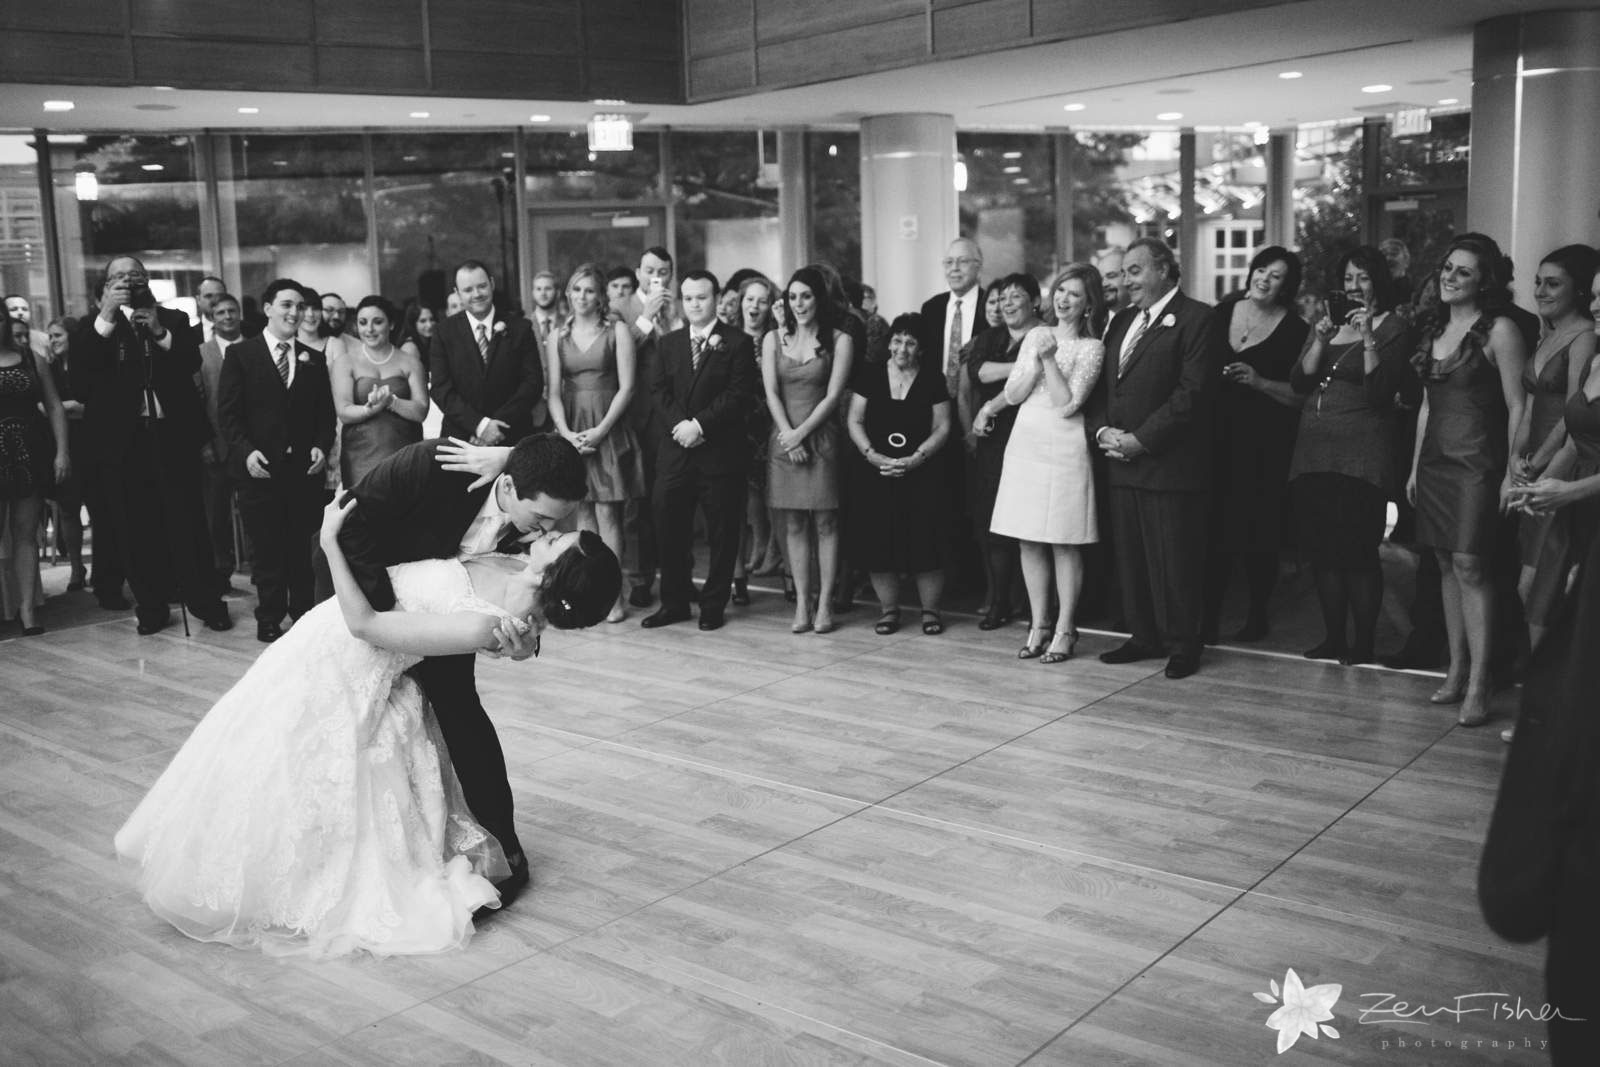 Epic shot of Groom dipping bride during first dance, black and white, guest reaction to first dance